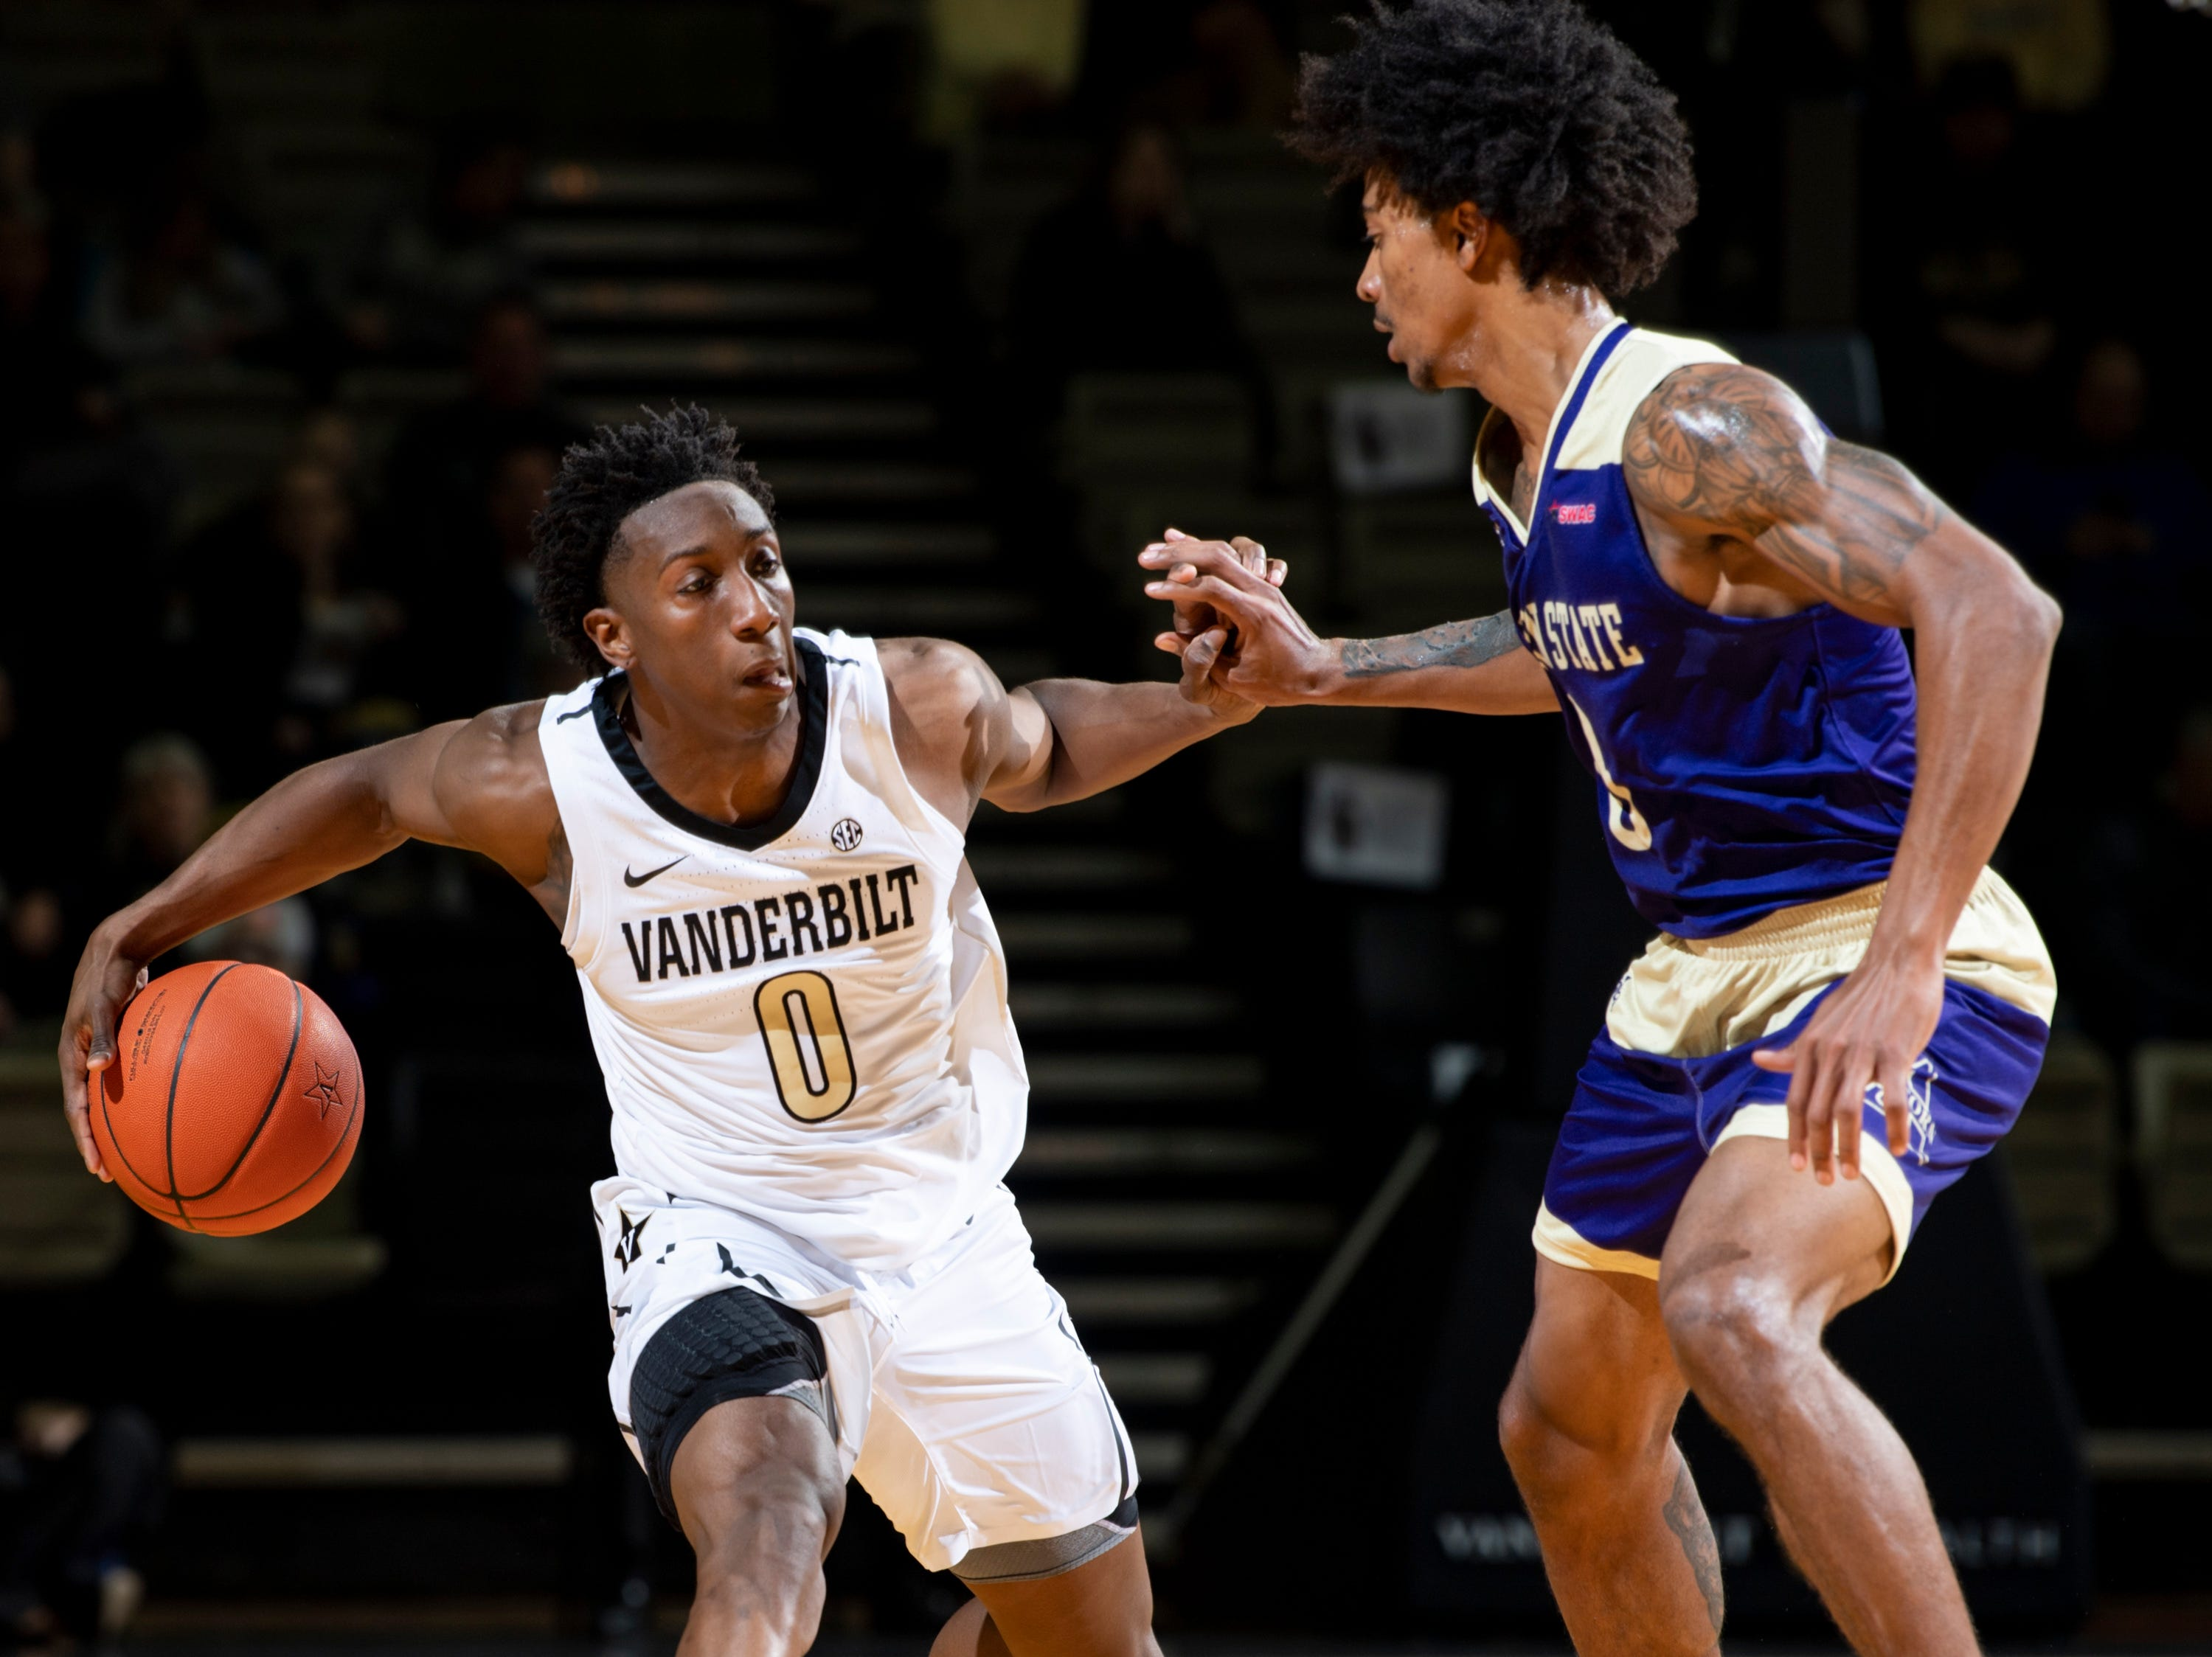 Vanderbilt guard Saben Lee (0) is guarded by Alcorn State guard Troymain Crosby (0) during the first half at Memorial Gym in Nashville, Tenn., Friday, Nov. 16, 2018.